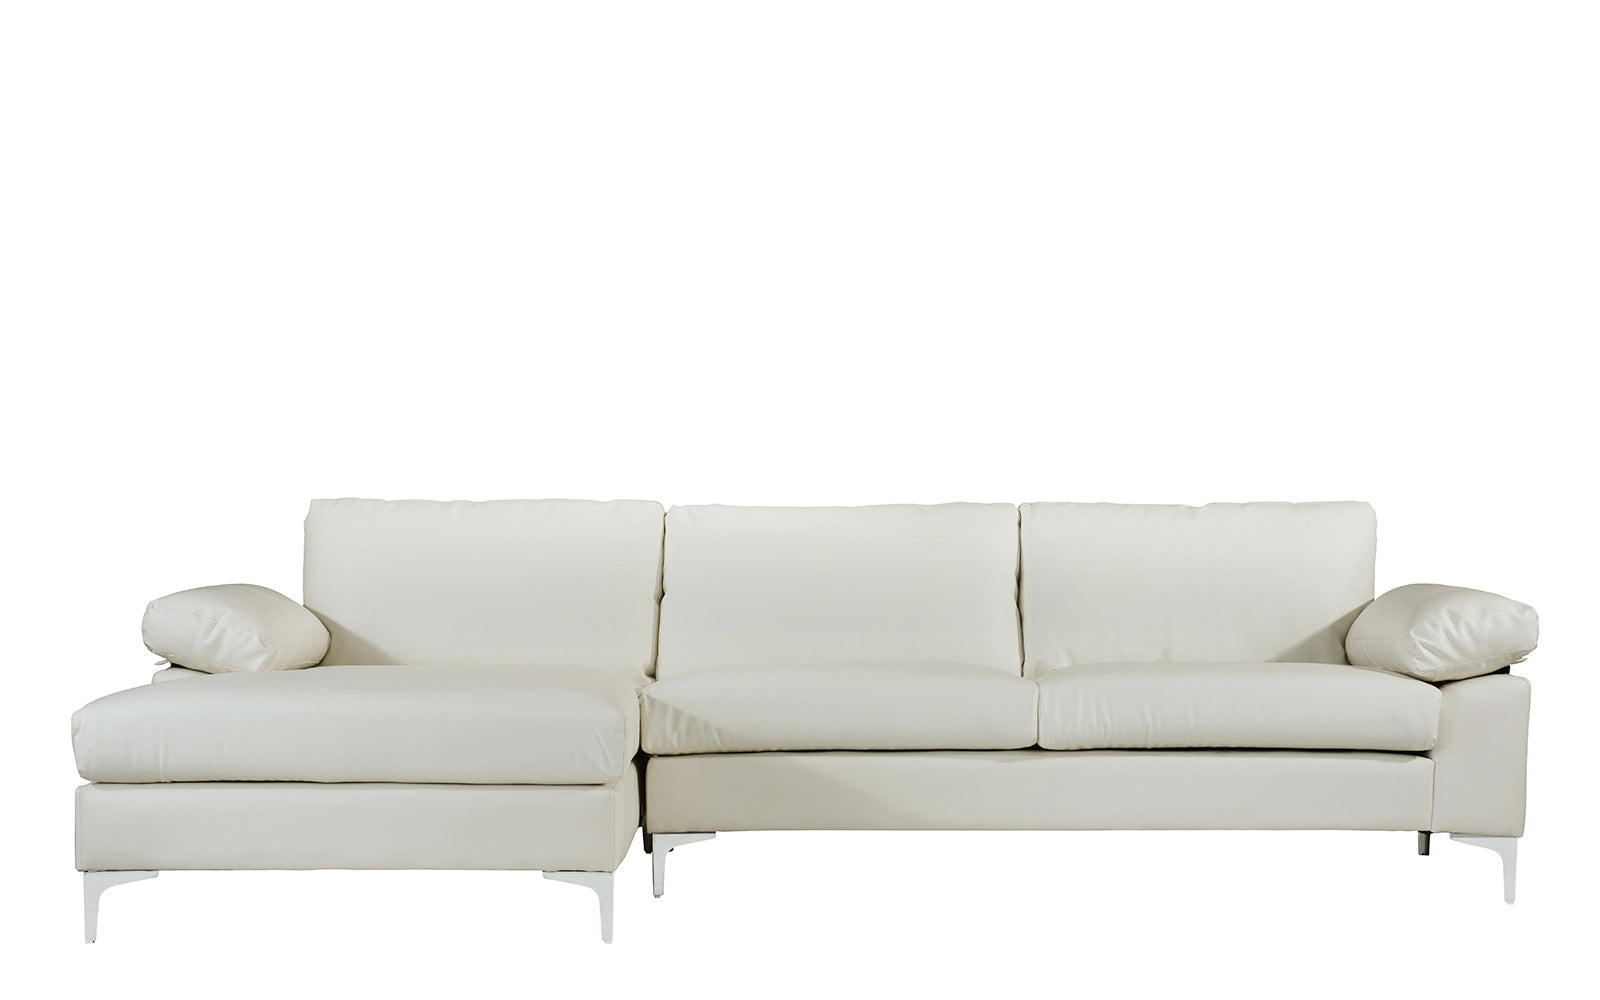 Faux Leather Large Sectional Sofa Image